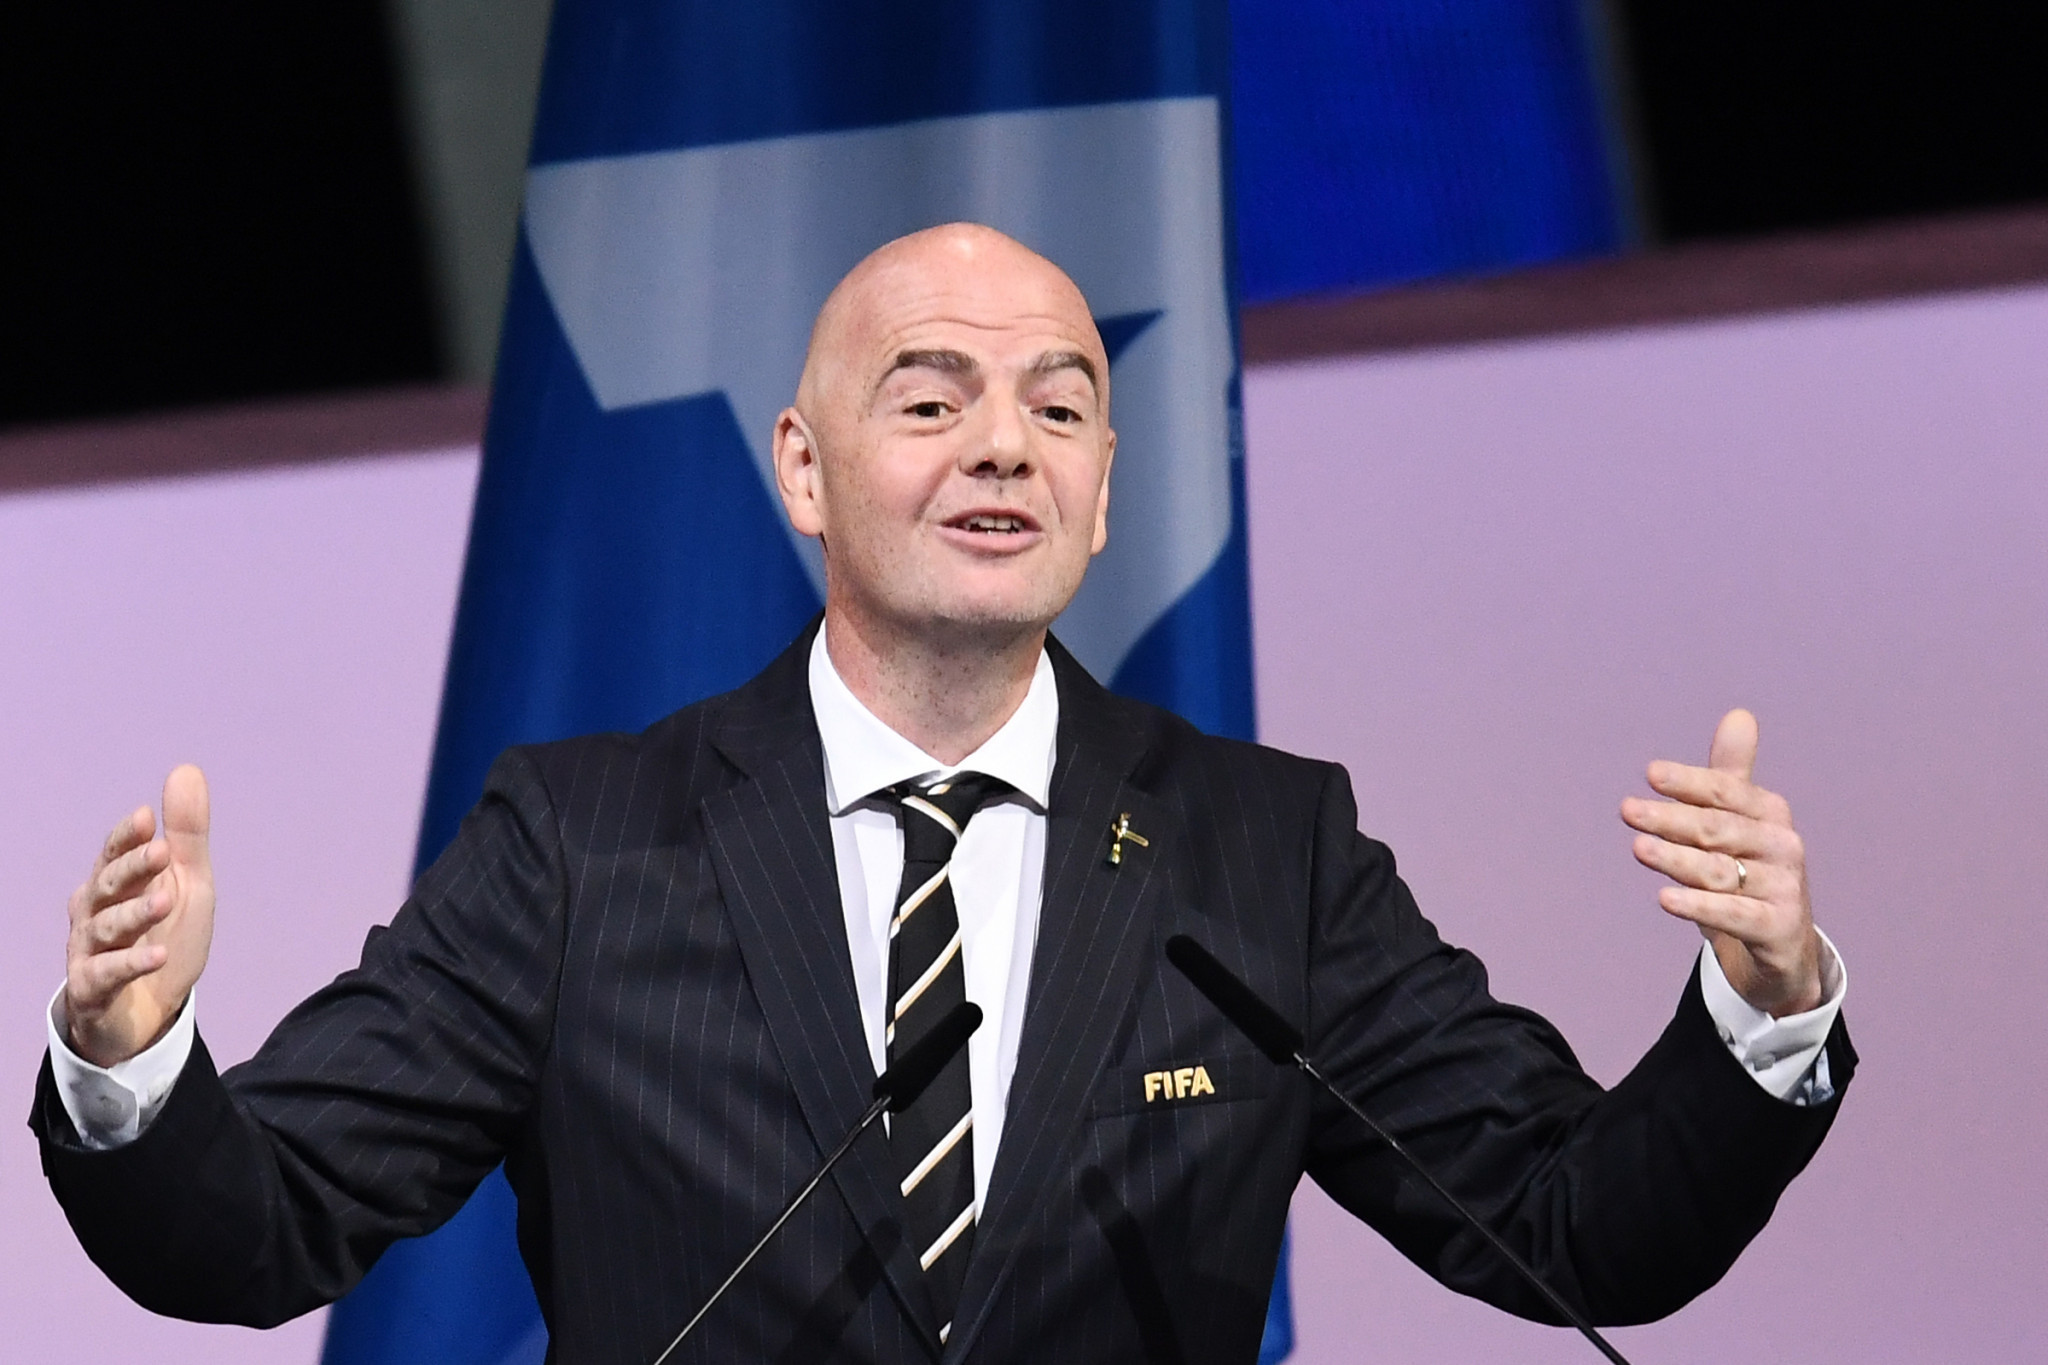 Gianni Infantino has been re-elected FIFA President ©Getty Images